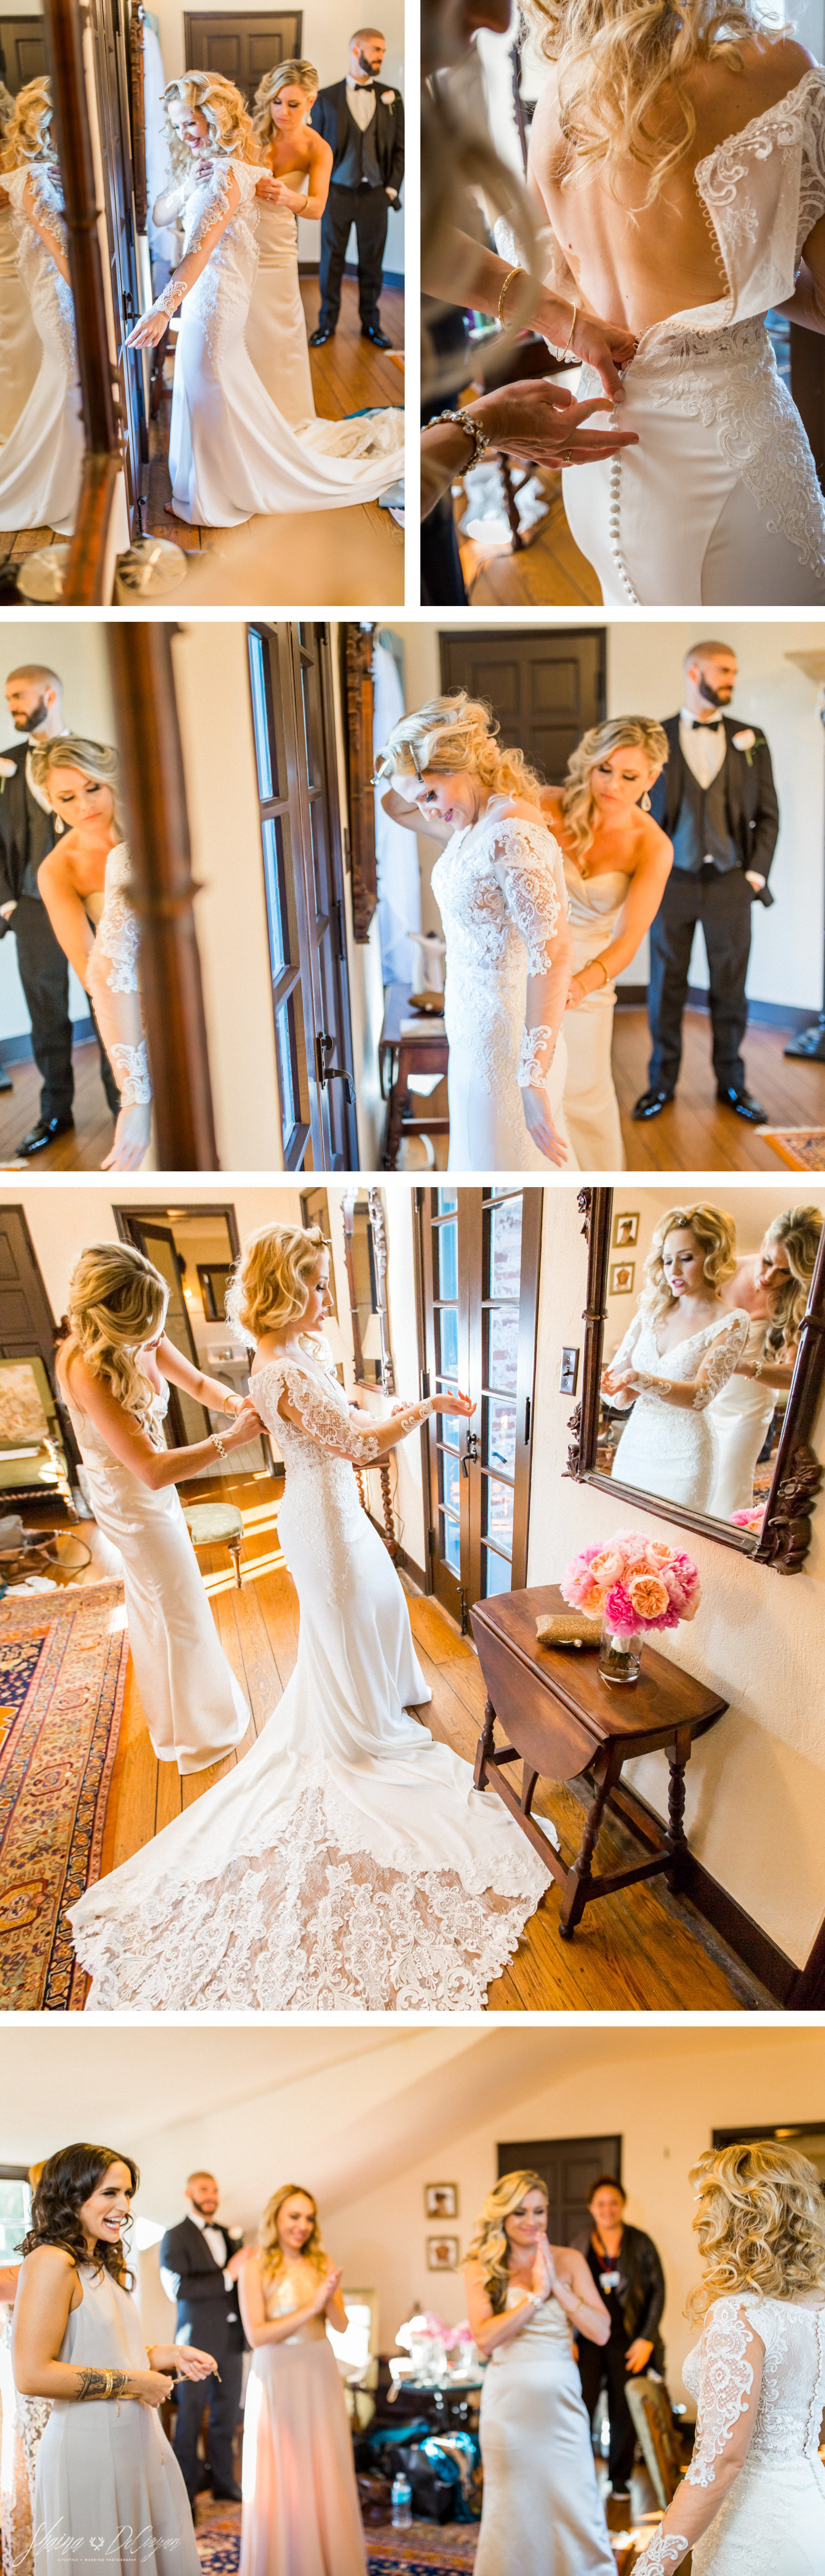 Essense of Australia Old Hollywood Glam wedding dress with floral lace sleeves and train details